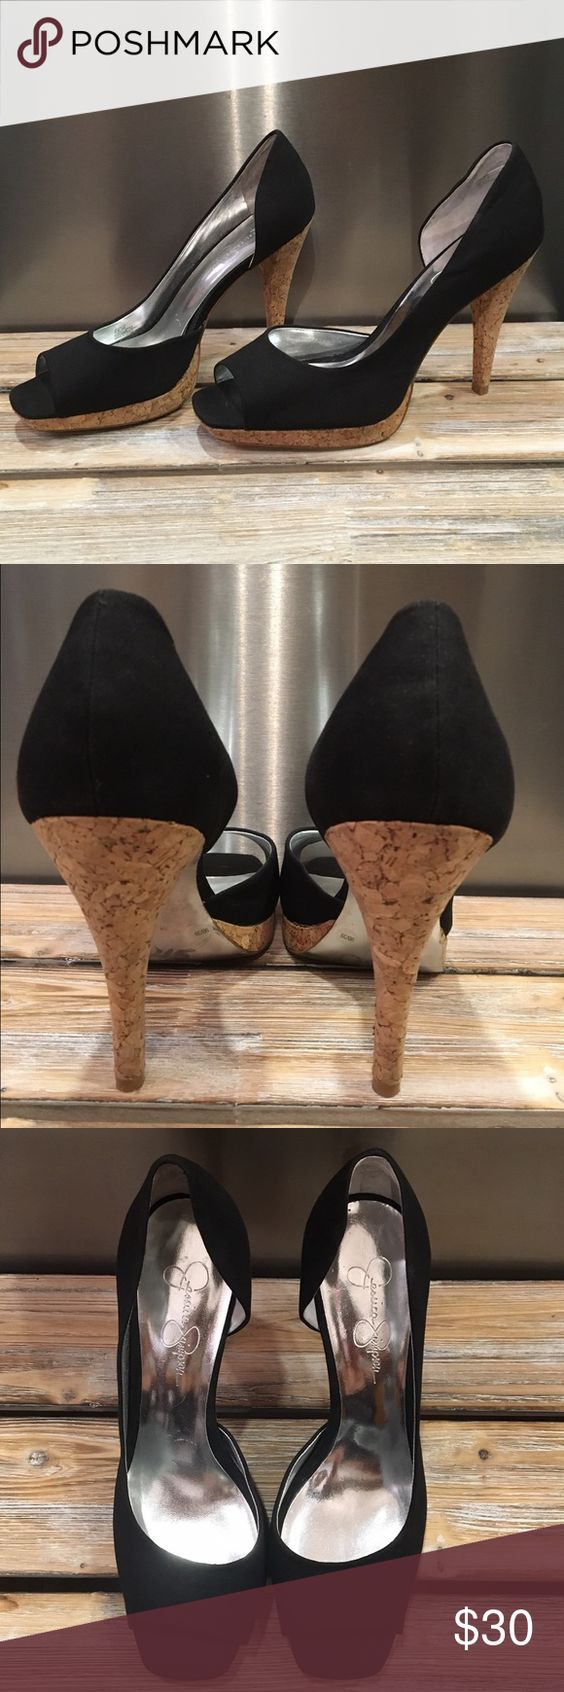 Jessica Simpson peep toe pumps Jessica Simpson peep toe pumps are adorable with the cork bottom.  The black is fabric and is in perfect condition and so is the cork.  After having kids these no longer fit me 😢 size 9 Jessica Simpson Shoes Heels